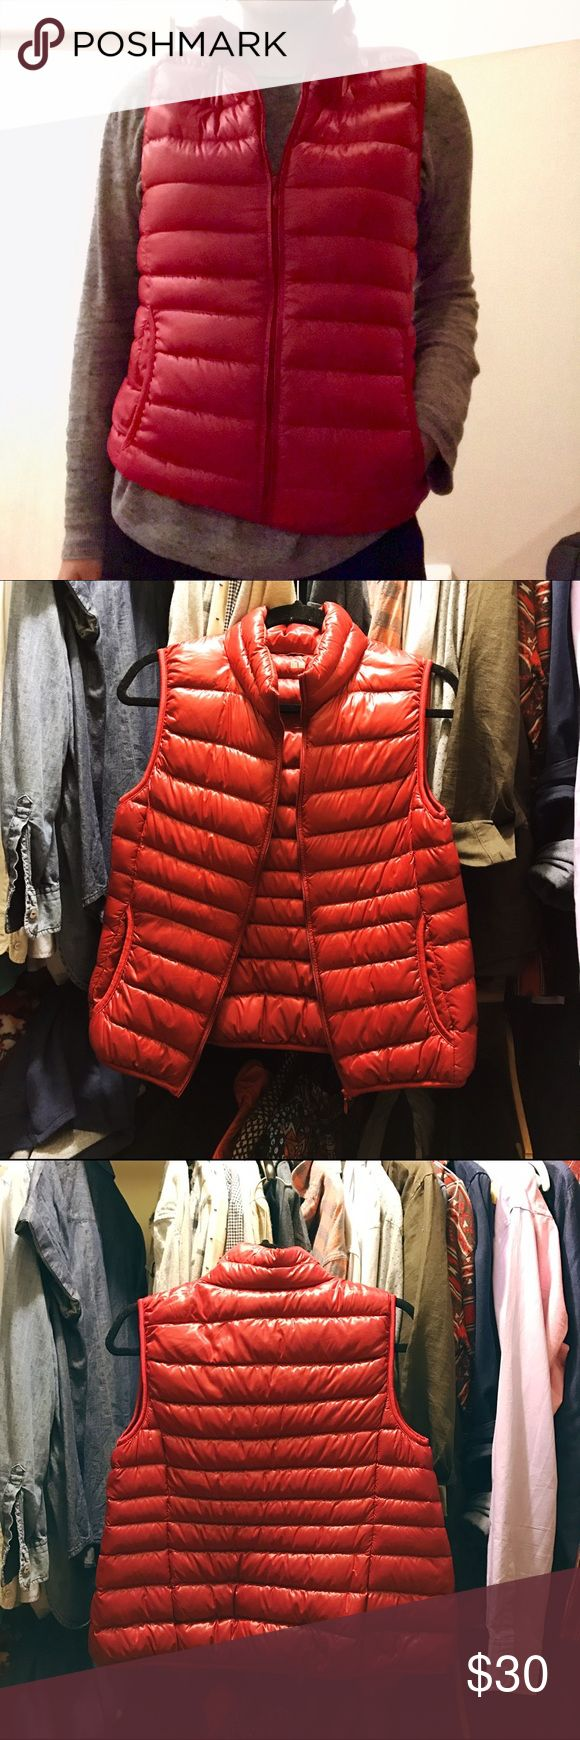 Ultralight down Uniqlo vest Incredibly light vest filled with down. Great for trips as it can roll and fit in backpacks and purses easily. A thin but warm layer. A sort of matte or satin finish. Used a few times, like new. Uniqlo Jackets & Coats Vests